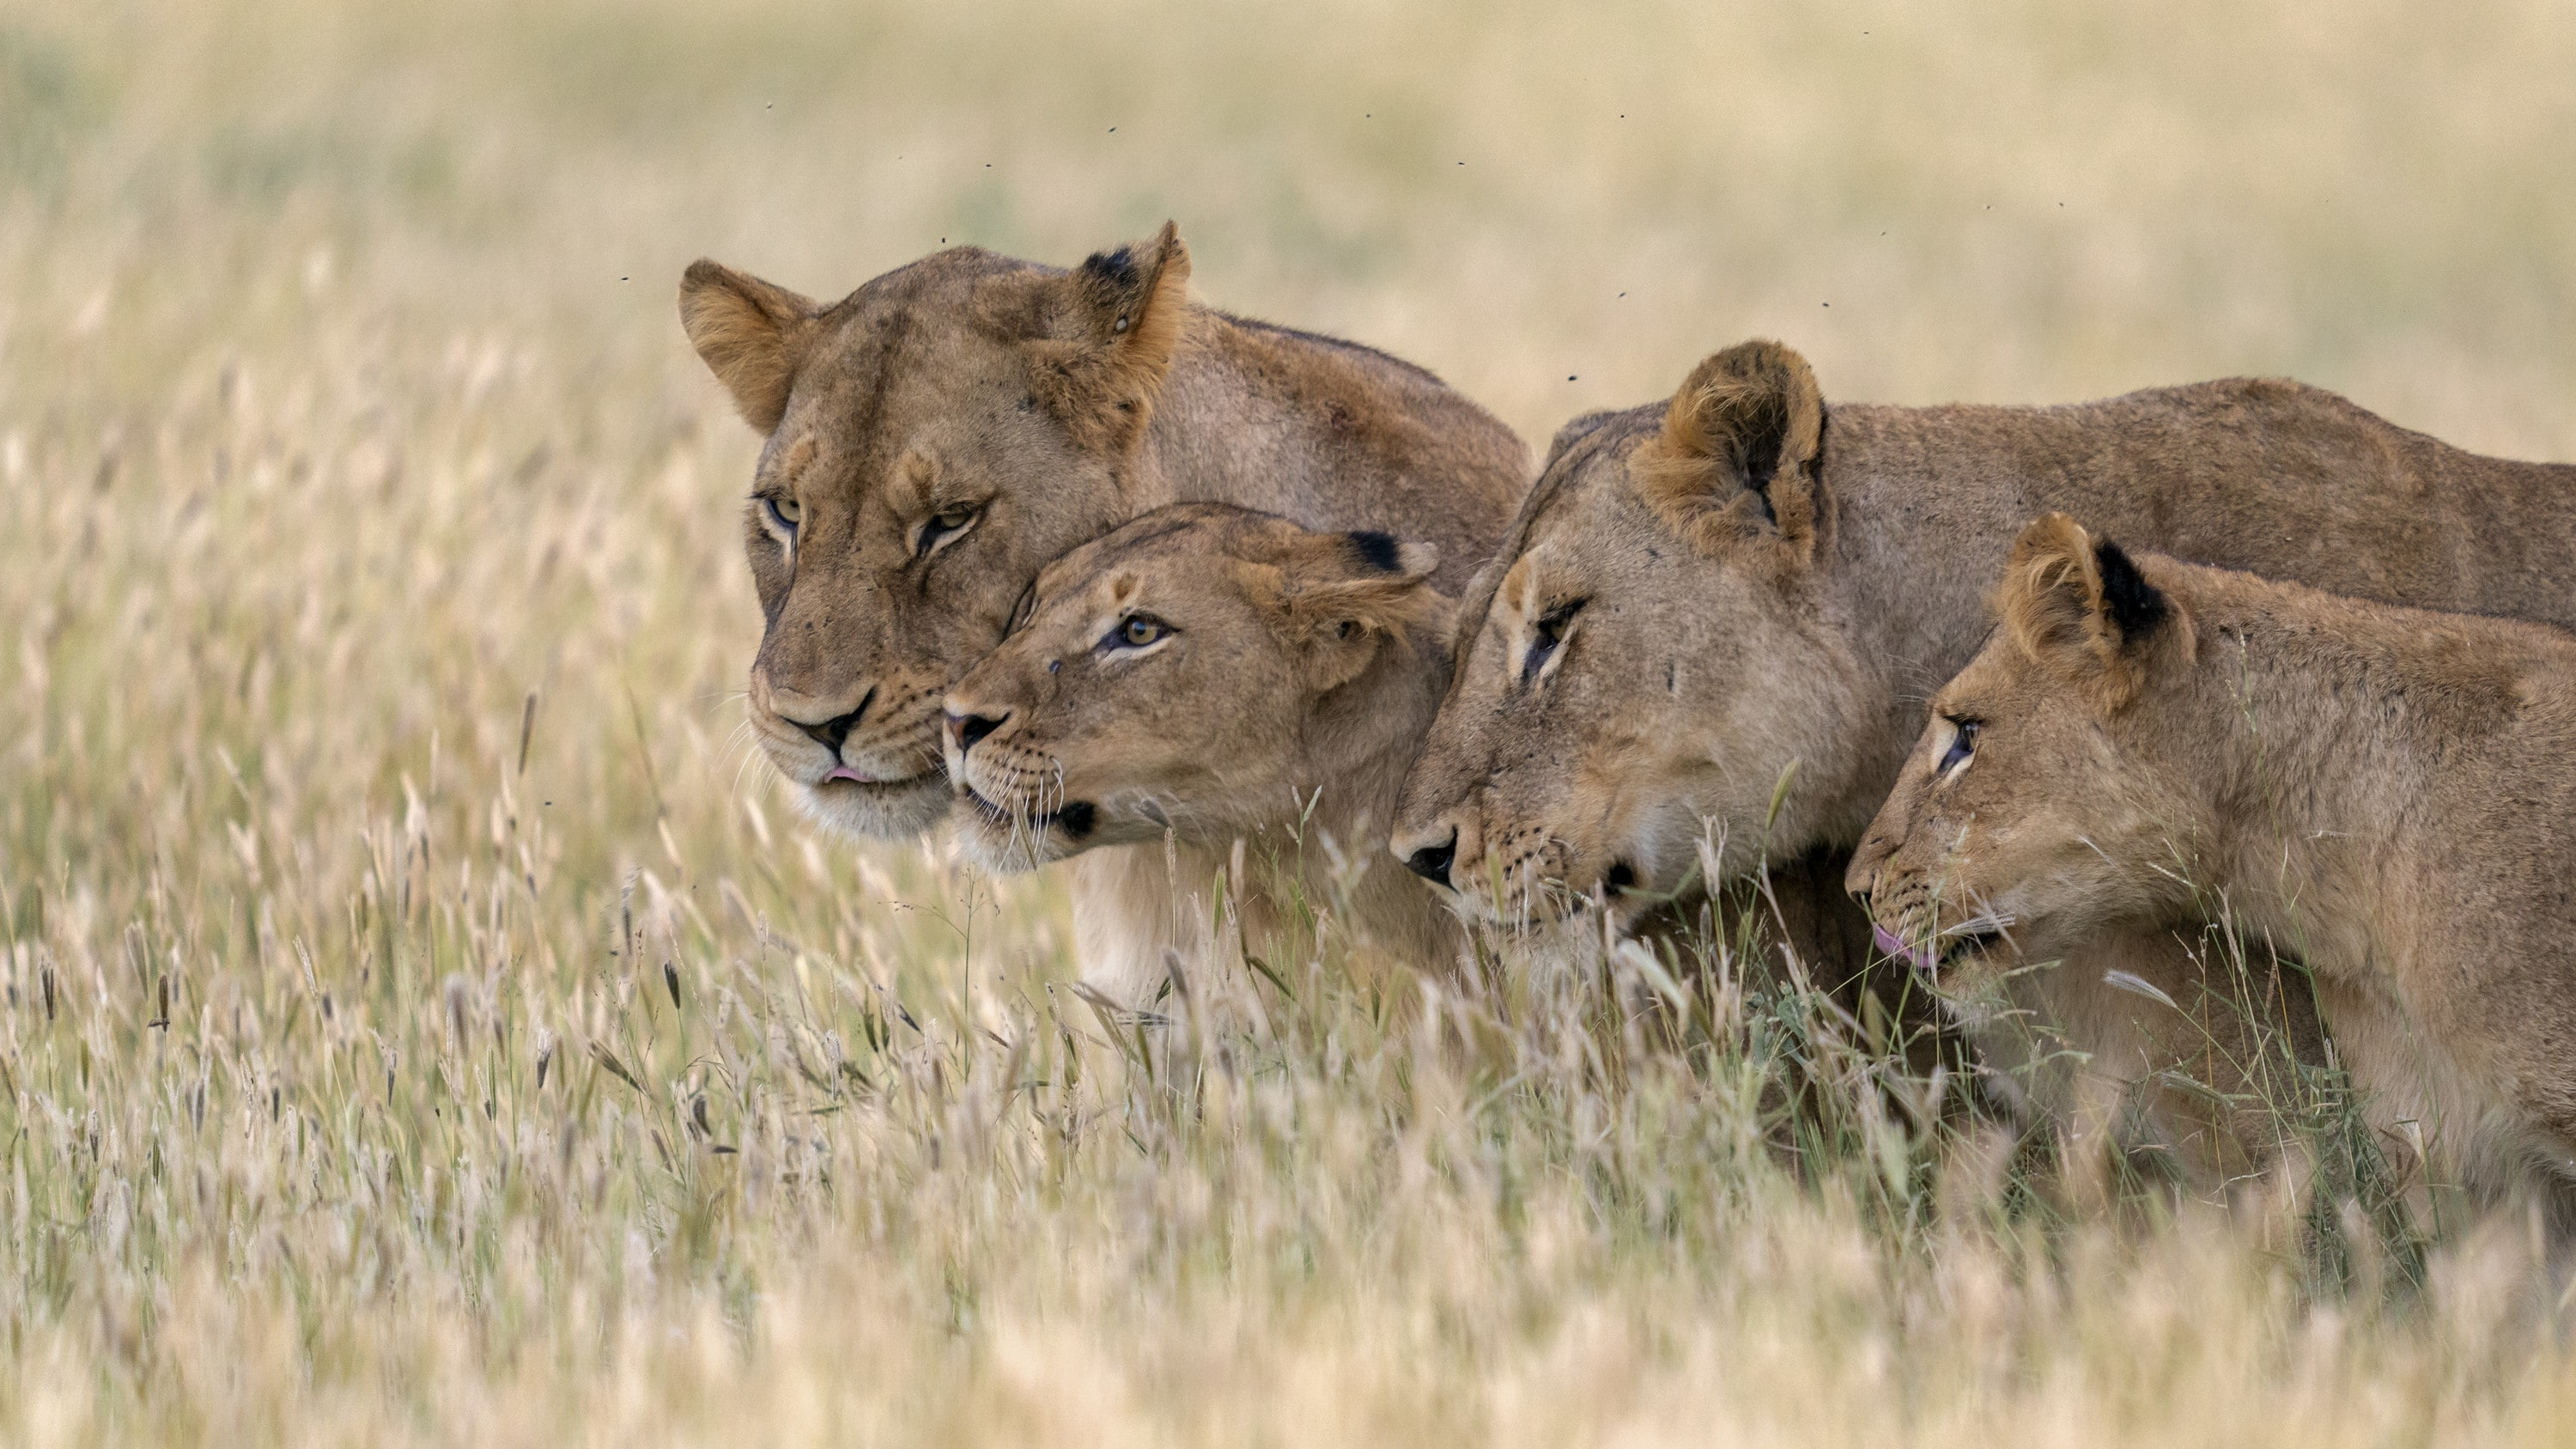 Malika, Ama and two cubs nuzzle one another. (National Geographic for Disney+/Russell MacLaughlin)